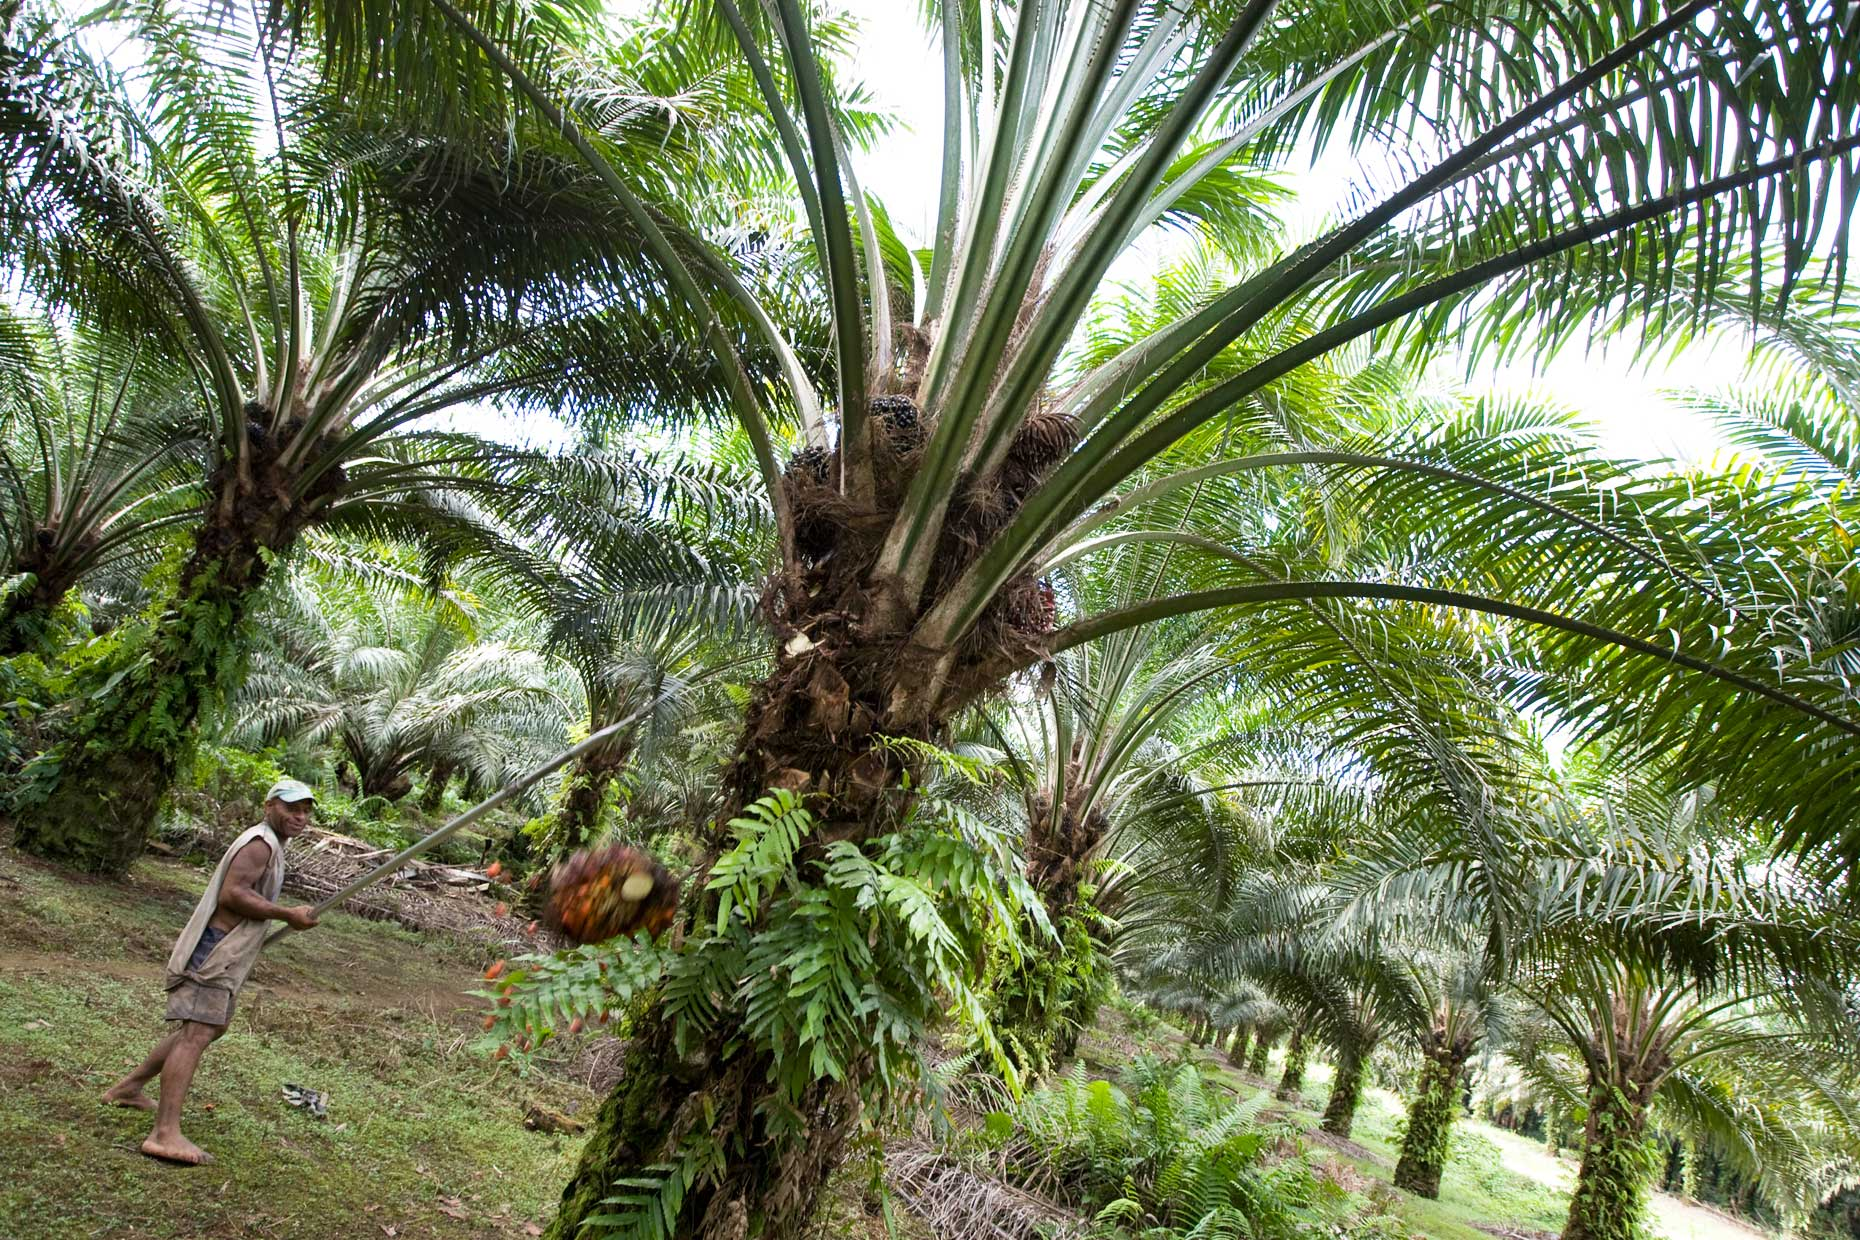 palm oil plantation in PNG, by Scotland Greenpeace photographer